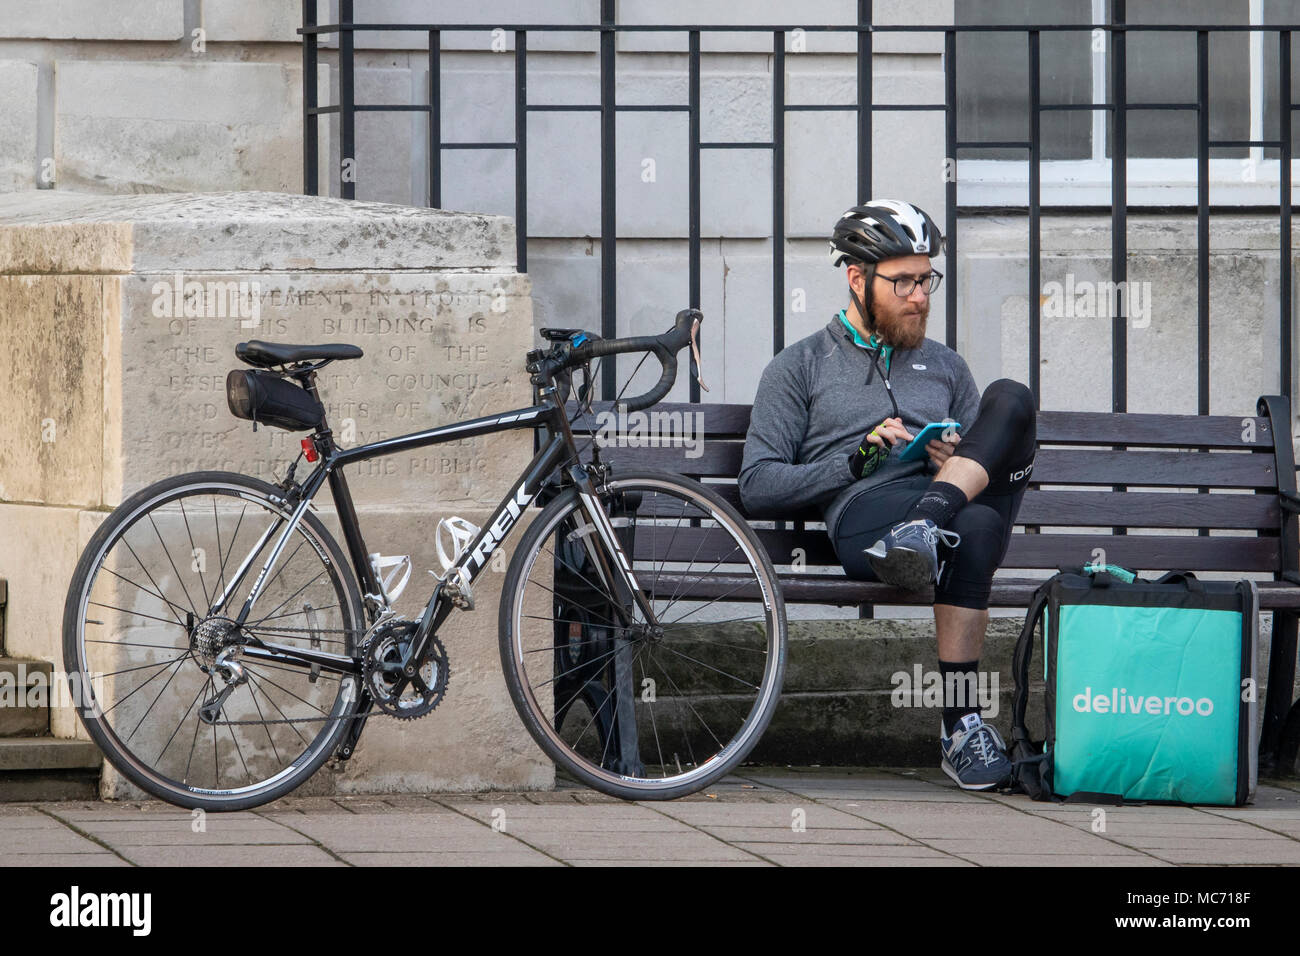 48c41340ca4 A deliveroo delivery cyclist of the gig economy with Trek Cycles bicycle  rests on a bench in Chelmesford town centre and uses a mobile phone